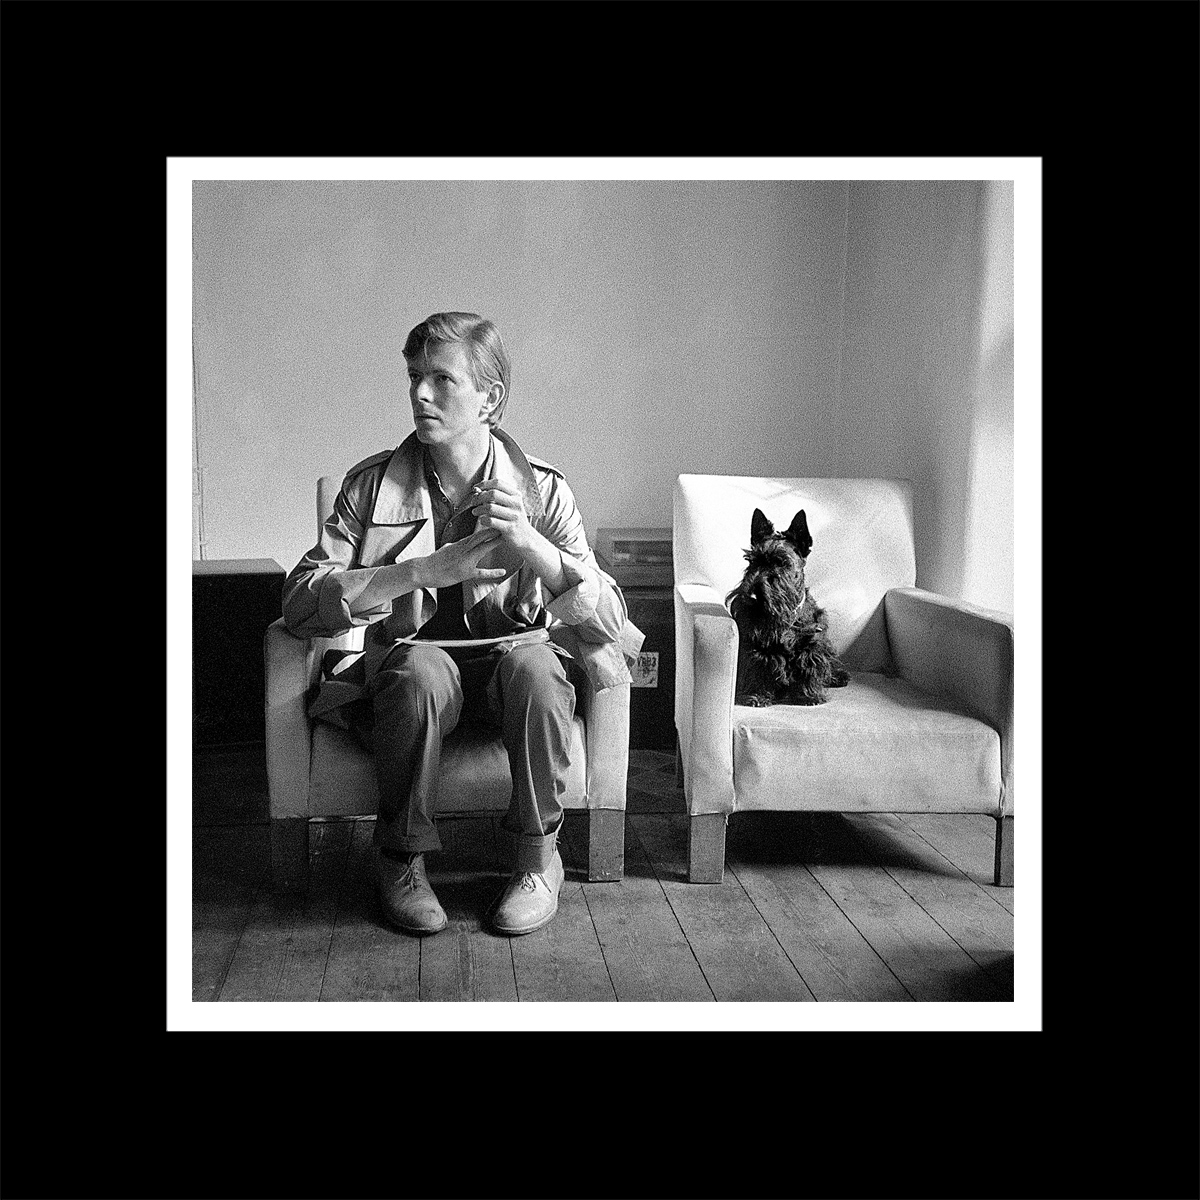 David Bowie with Scottie Dog print